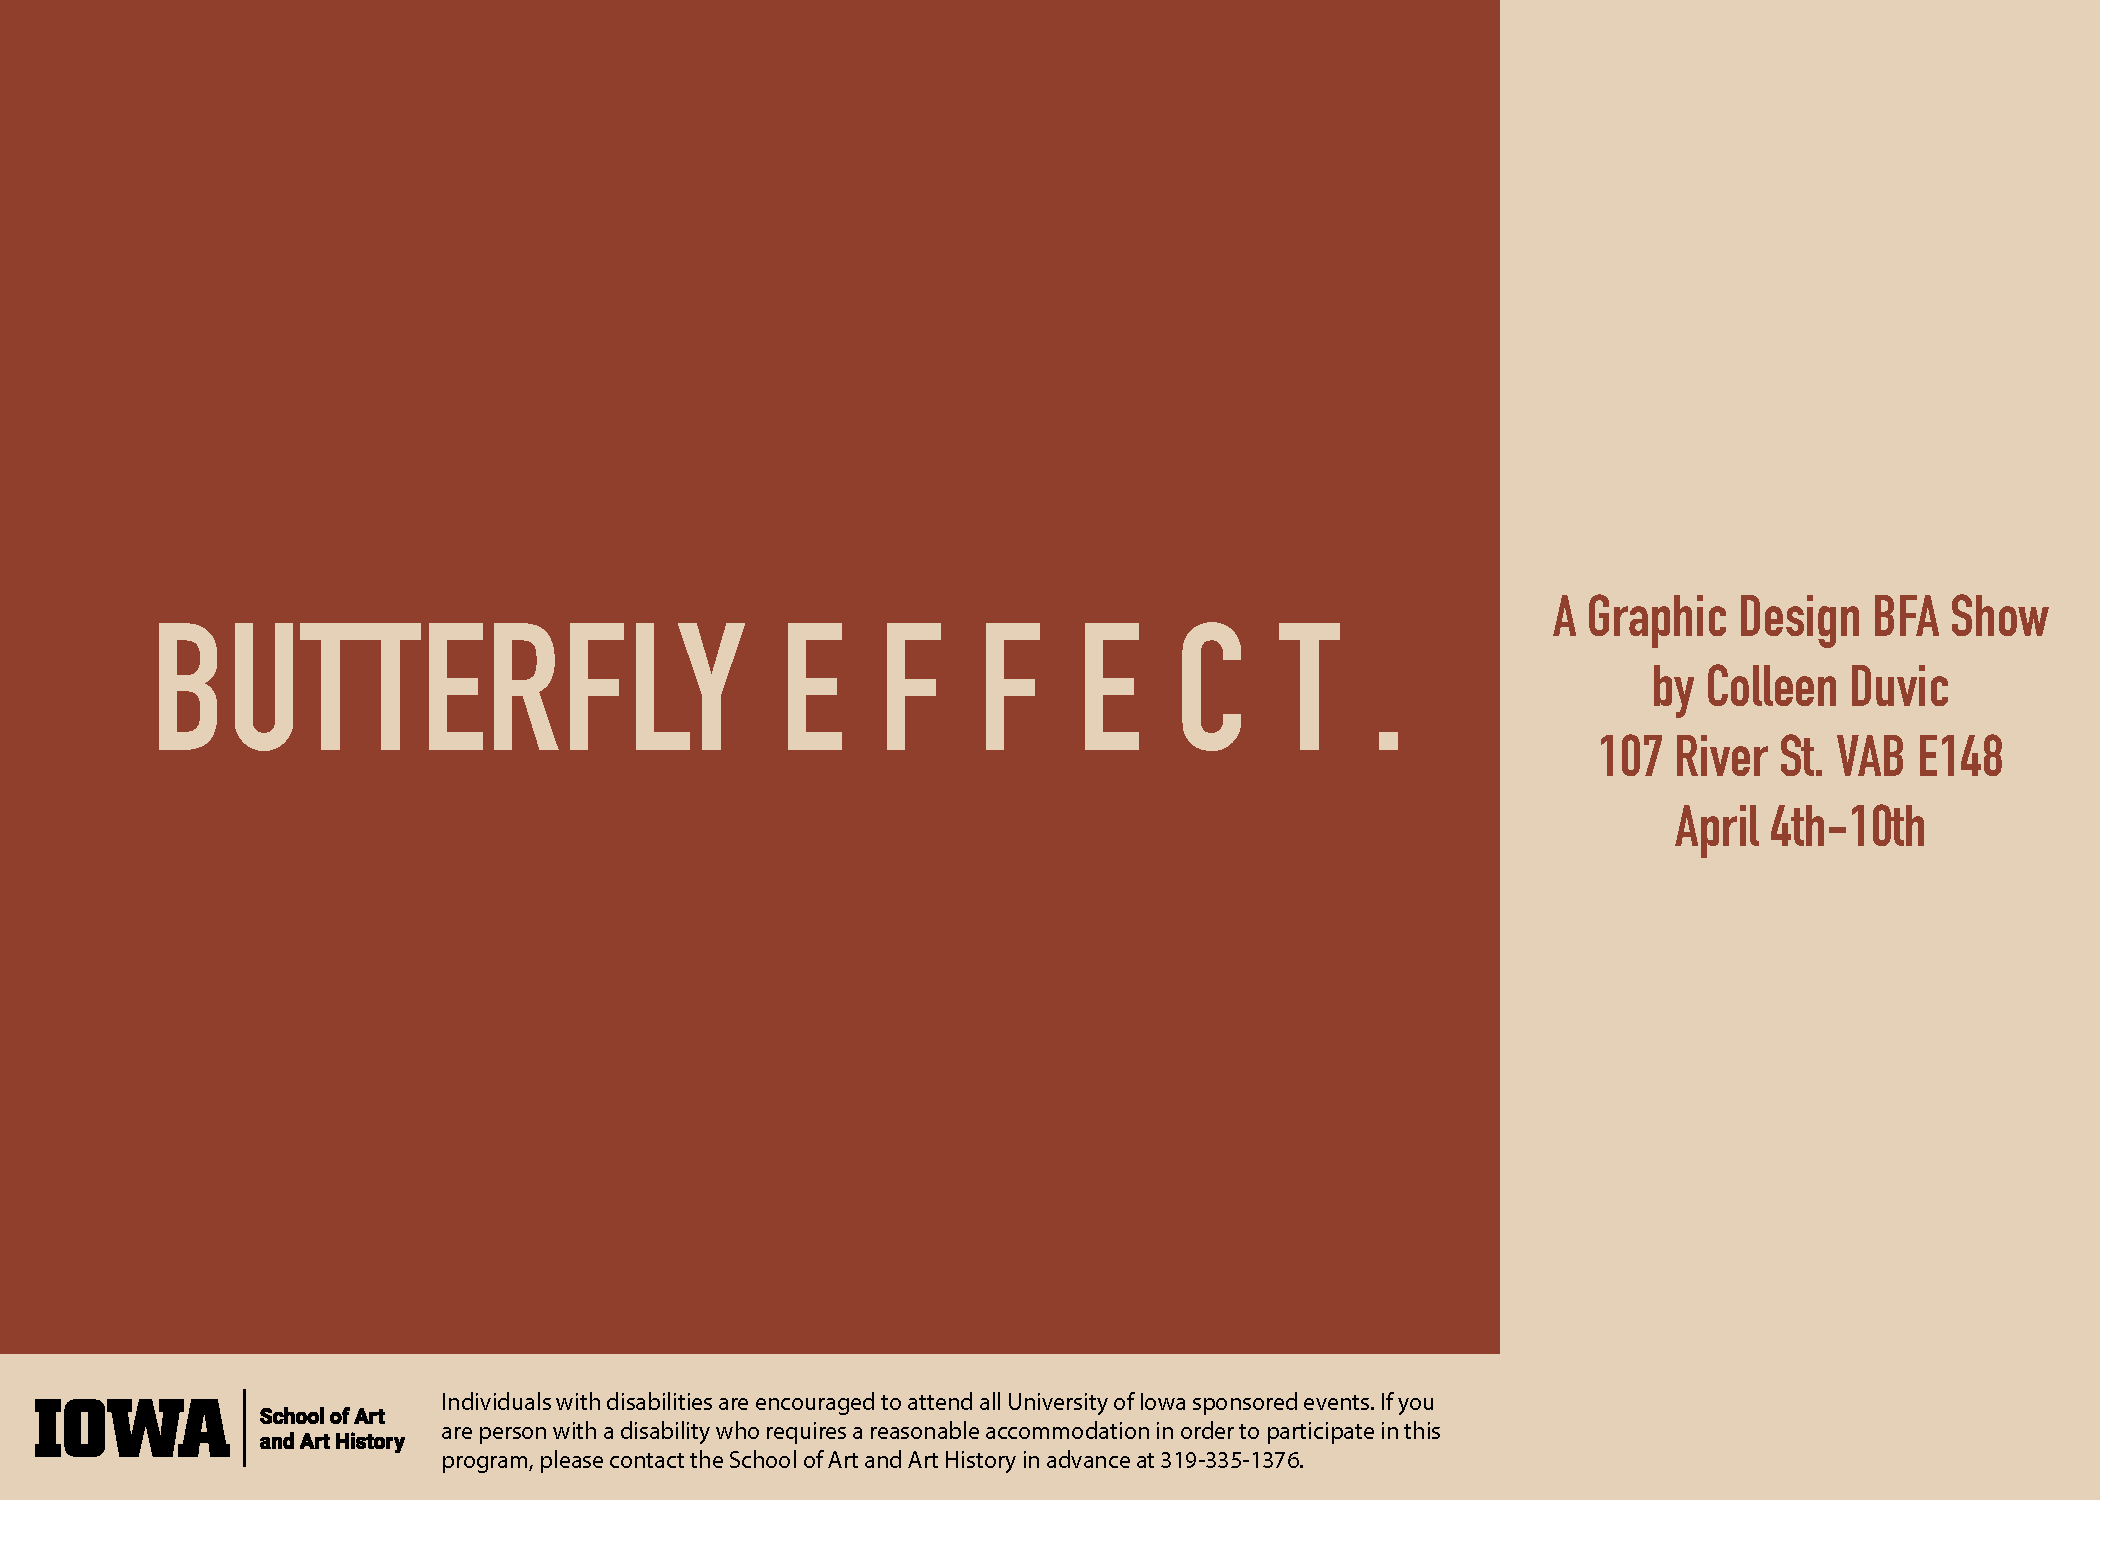 cream and rust color background, show card Butterfly Effect. by Colleen